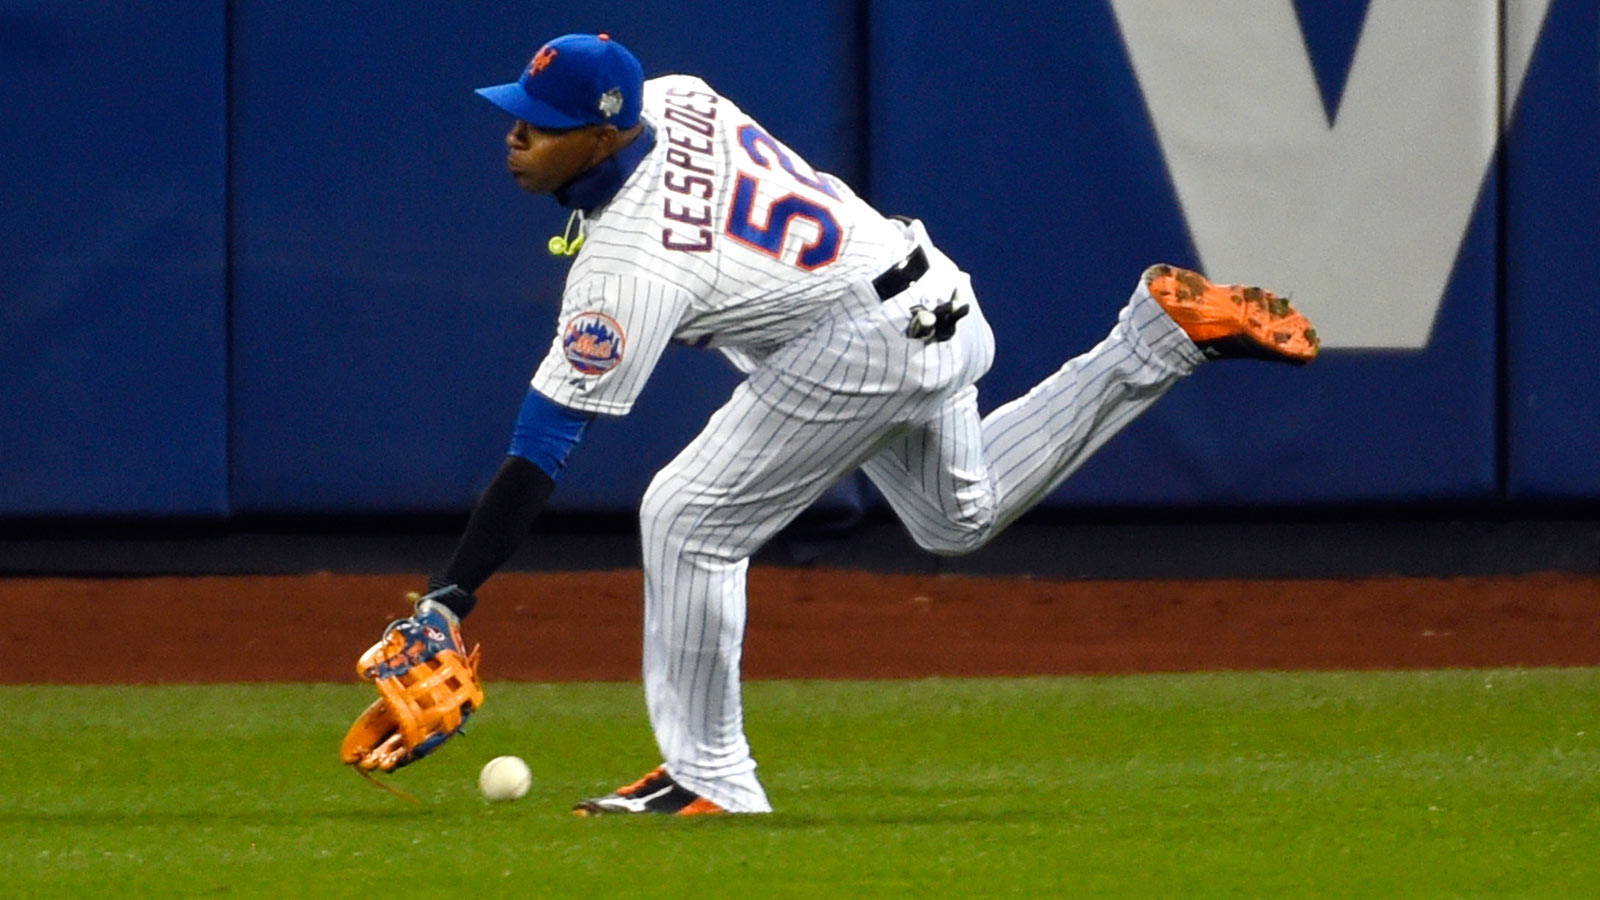 In Mets' defense, there are plenty of ways to master run prevention